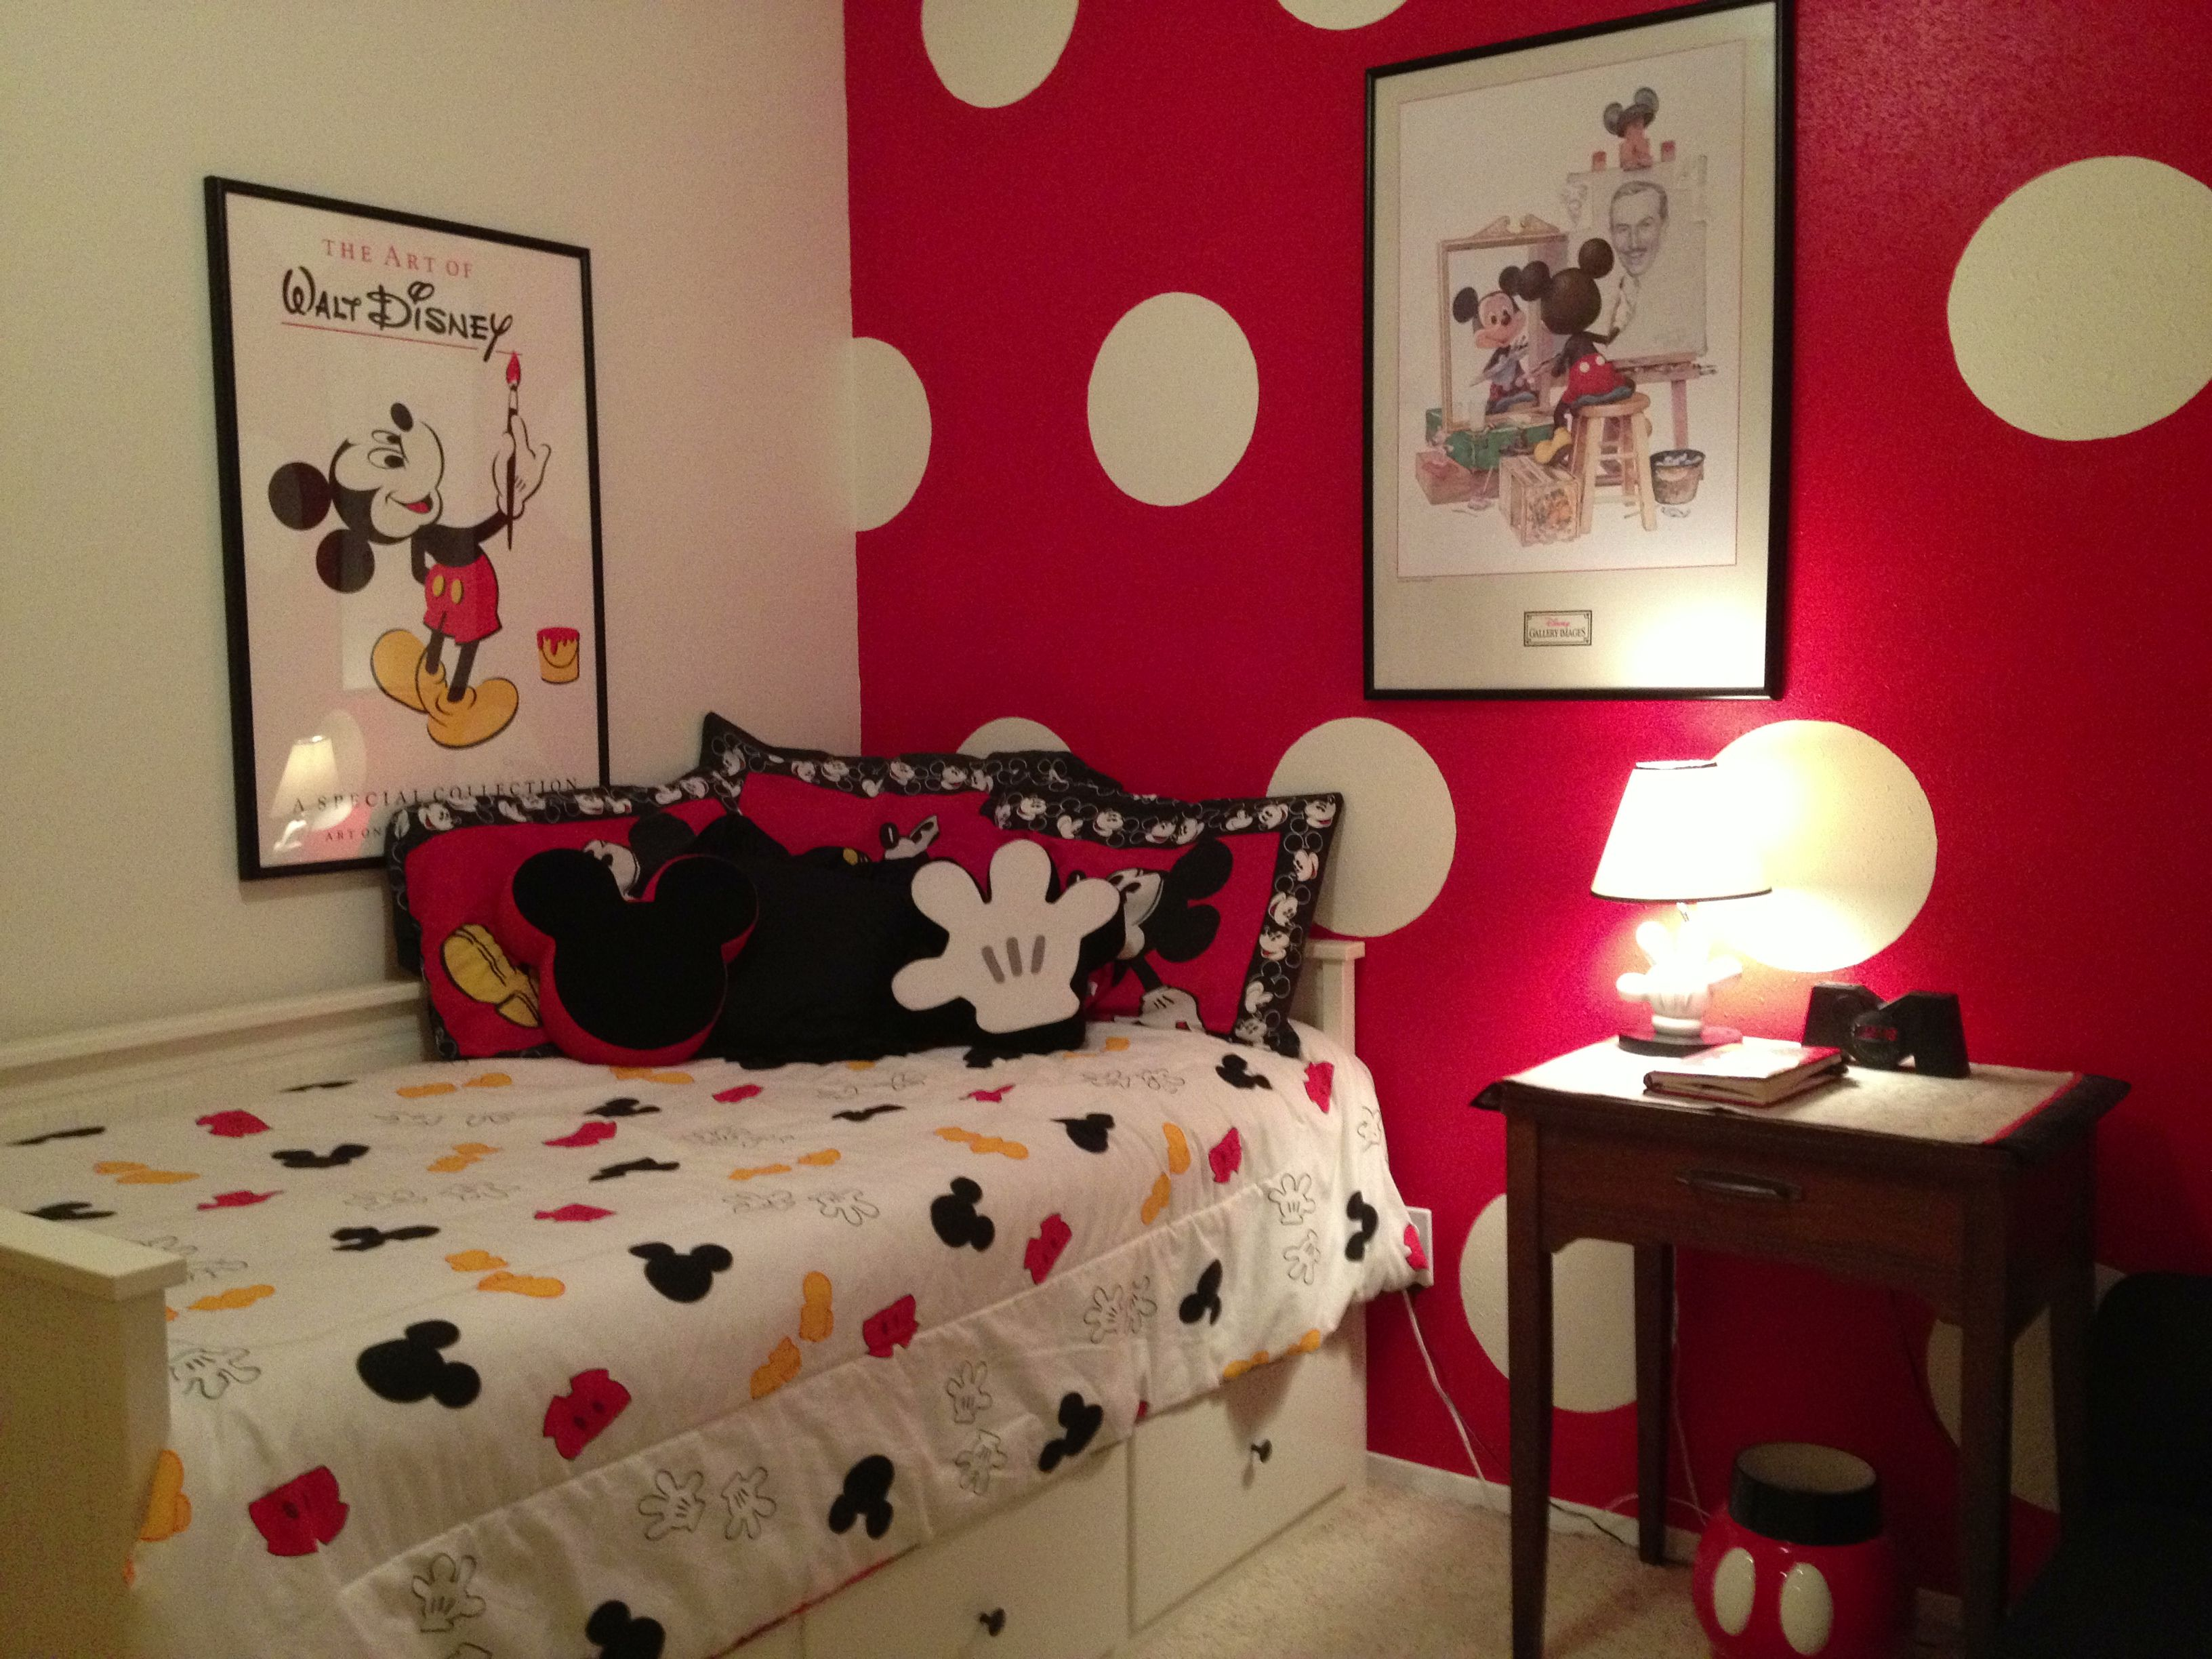 Mickey Mouse Guest Room. Mickey Mouse Guest Room   The Mouse House   Pinterest   Mickey